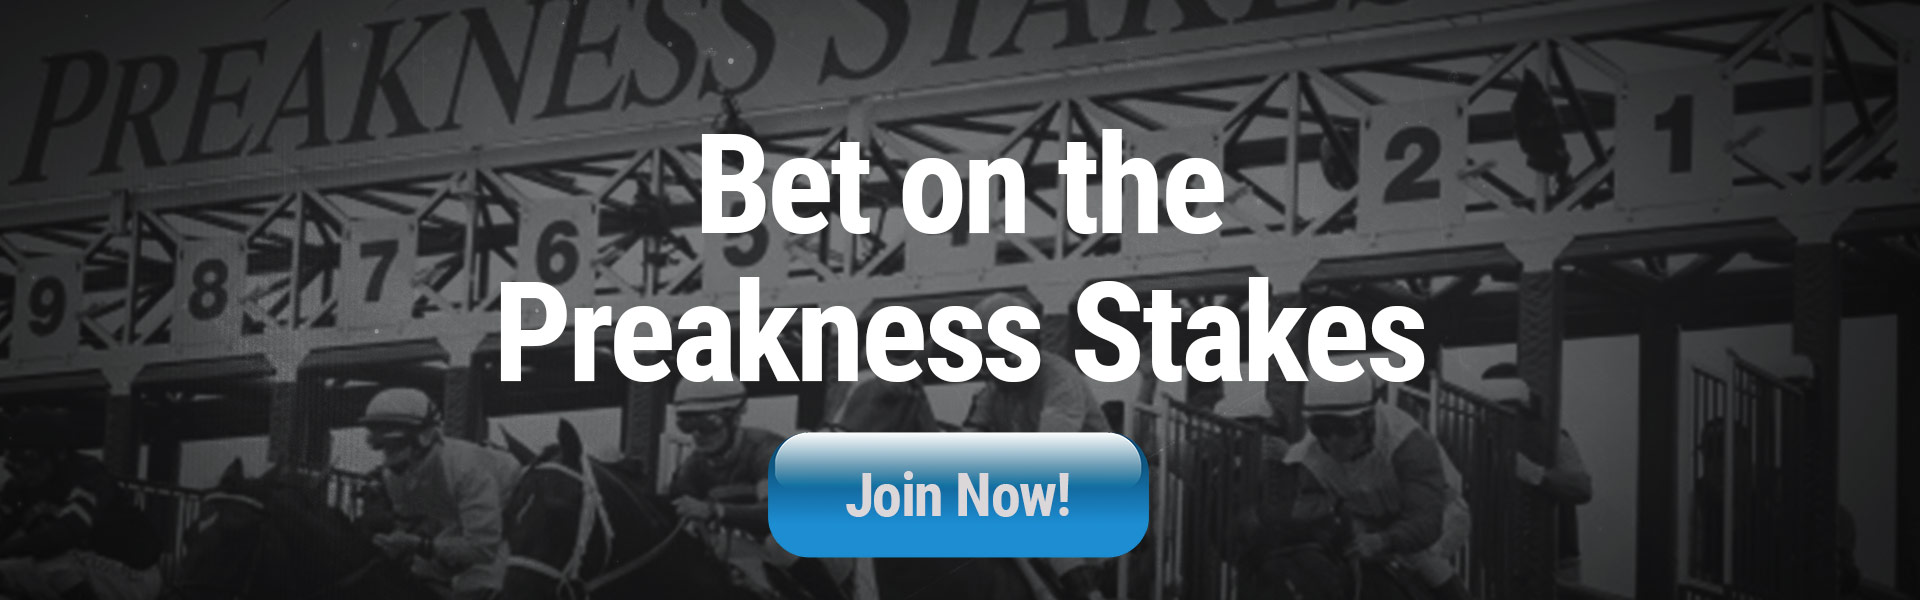 sportsbook.com bet the preakness online